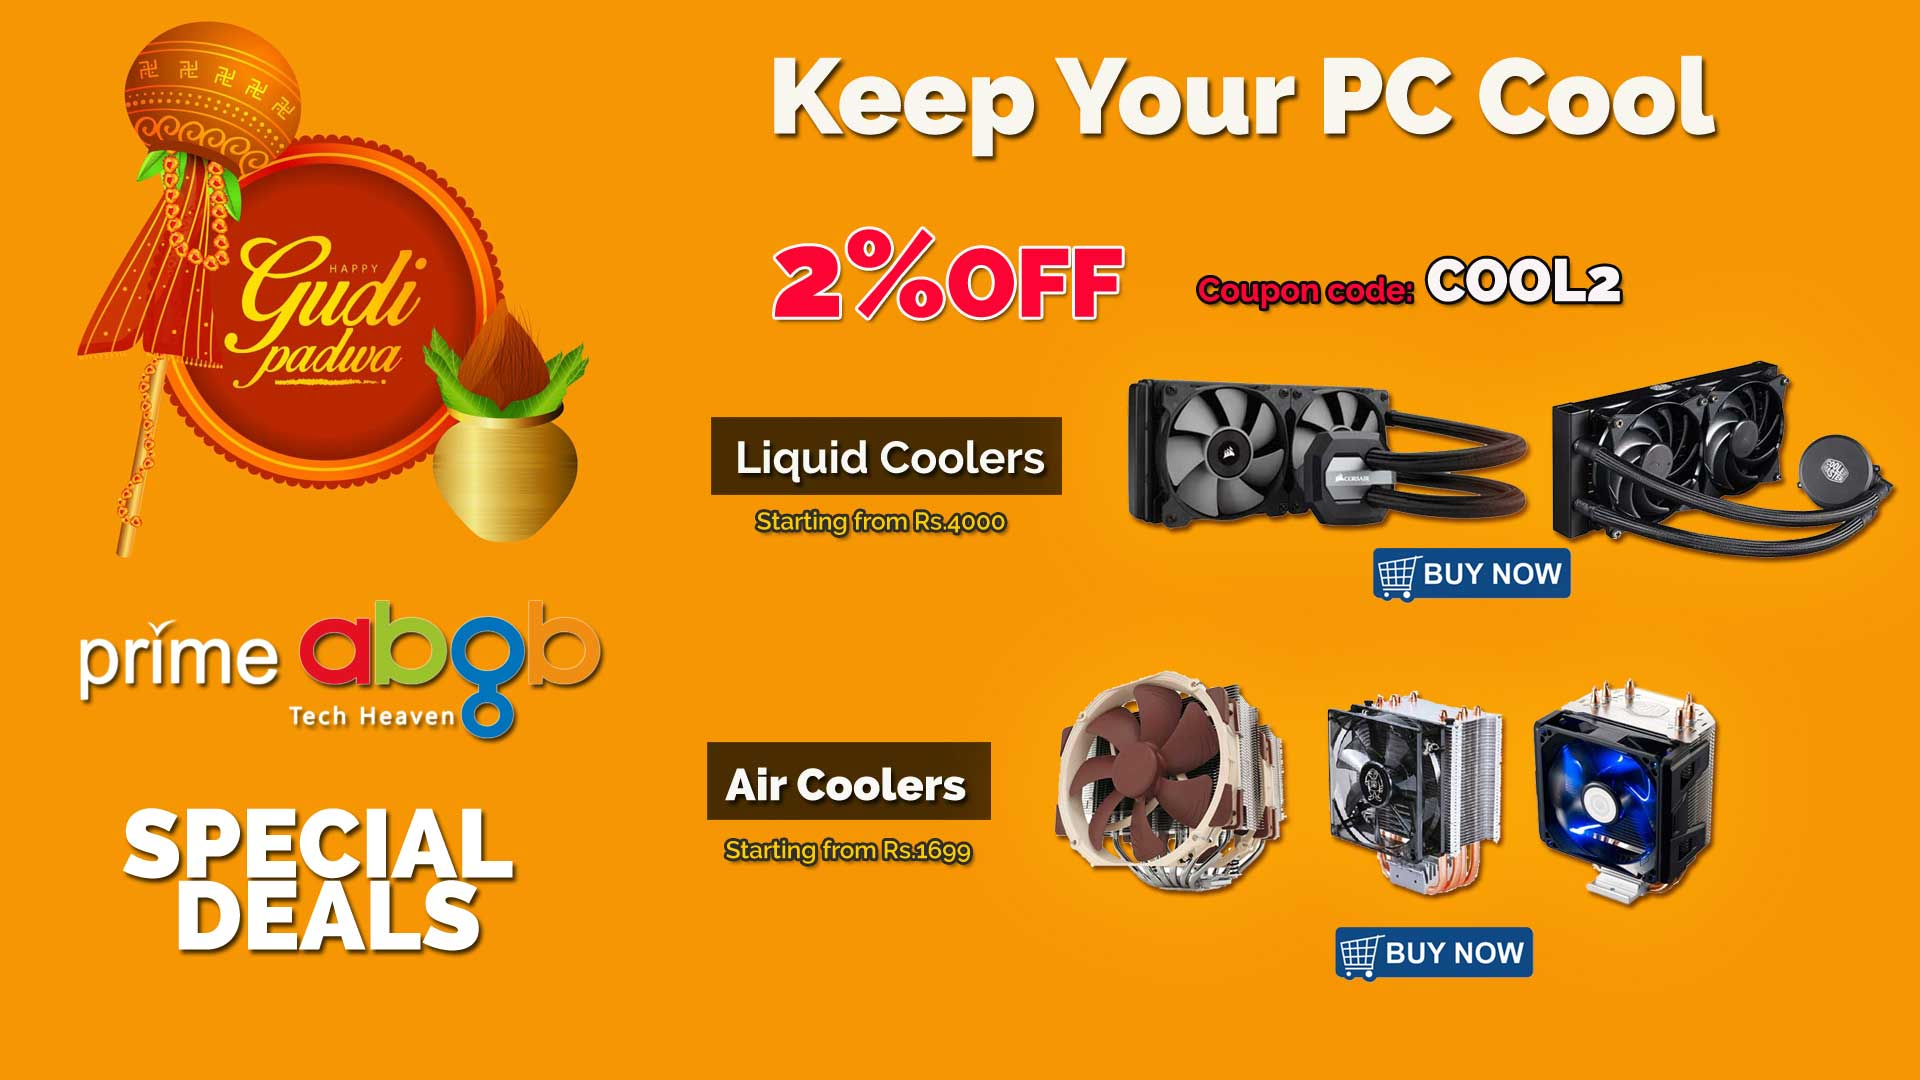 gudi-padwa-cooler-offer1